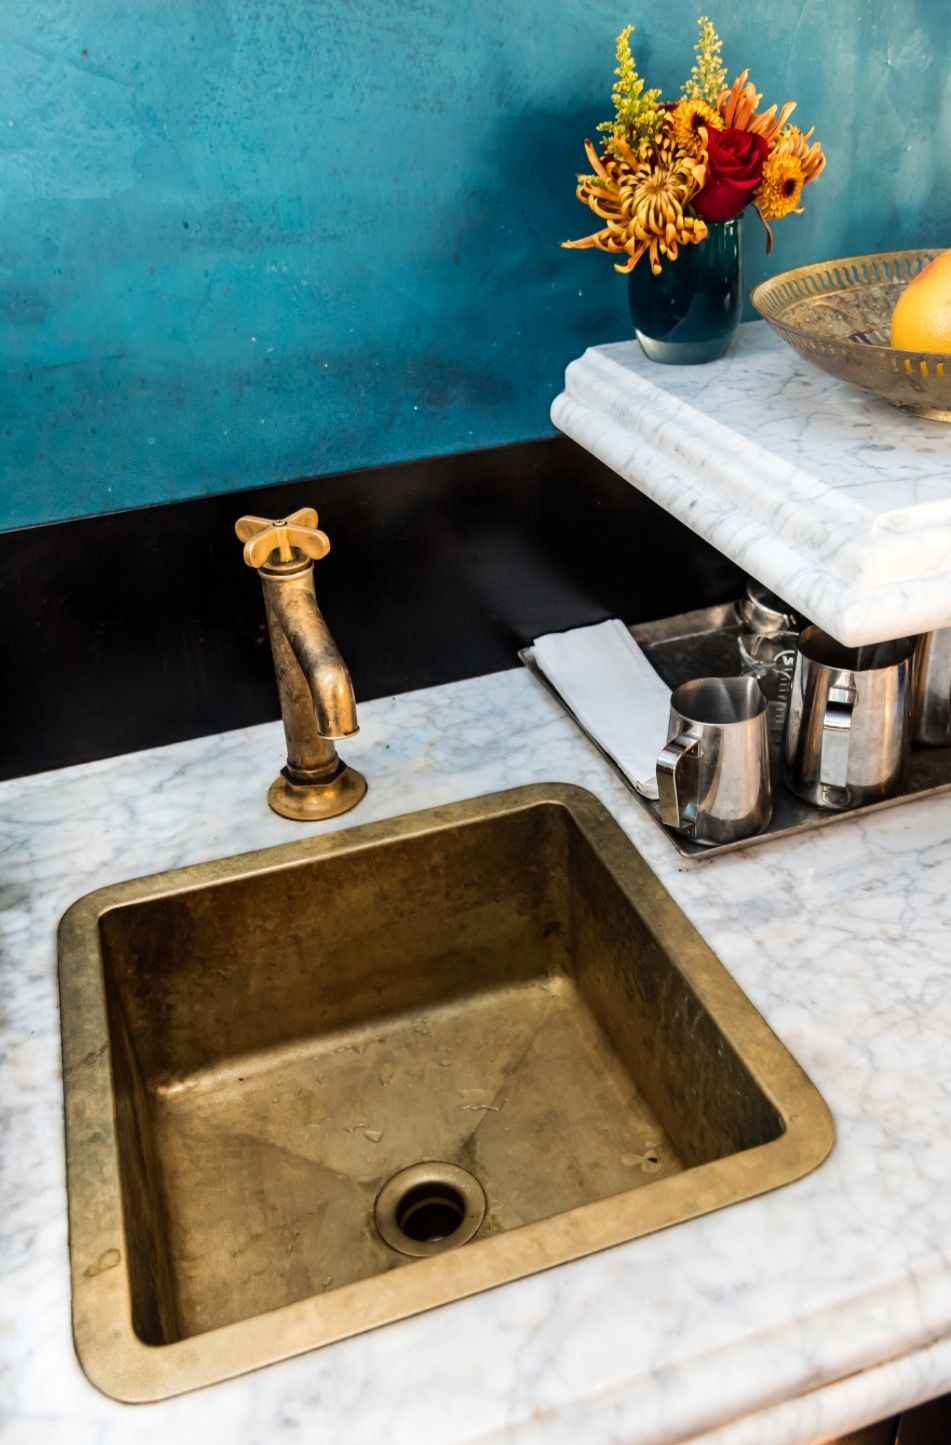 the alexander marchant handmade waterloo bar sink in unlacquered brass finish installed with the waterworks